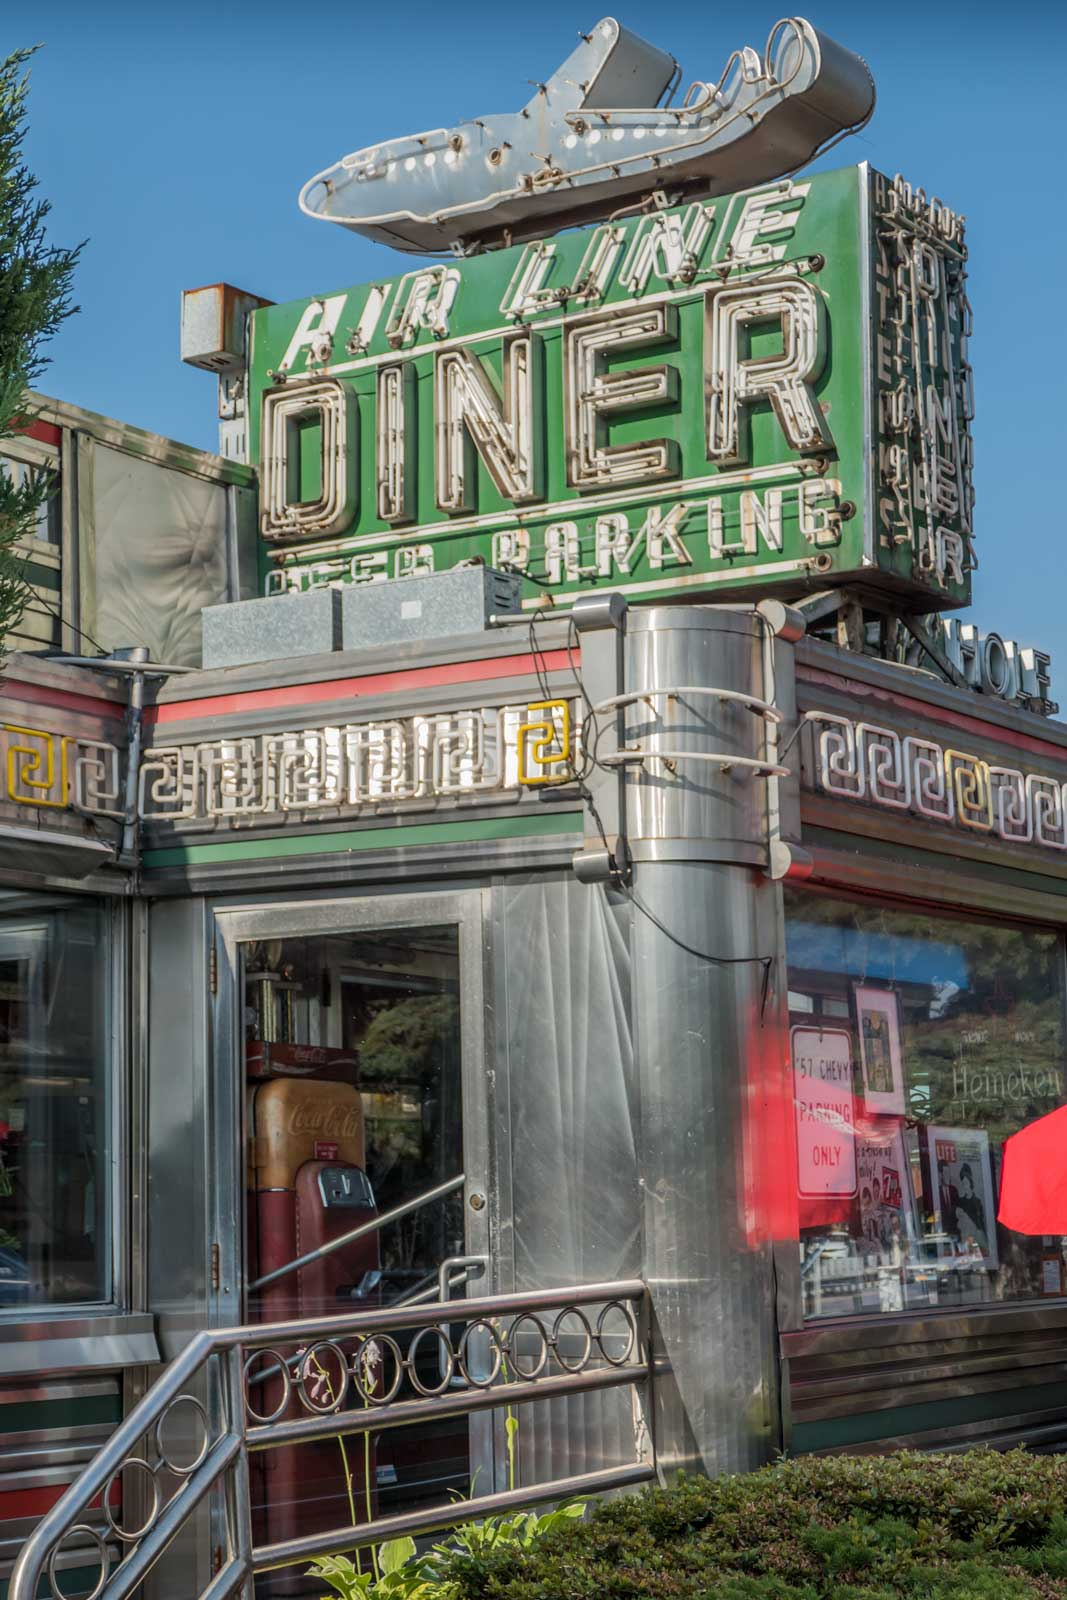 Jackson-Hole-Airline-Diner--Astoria-Queens-NYC-1067x1600